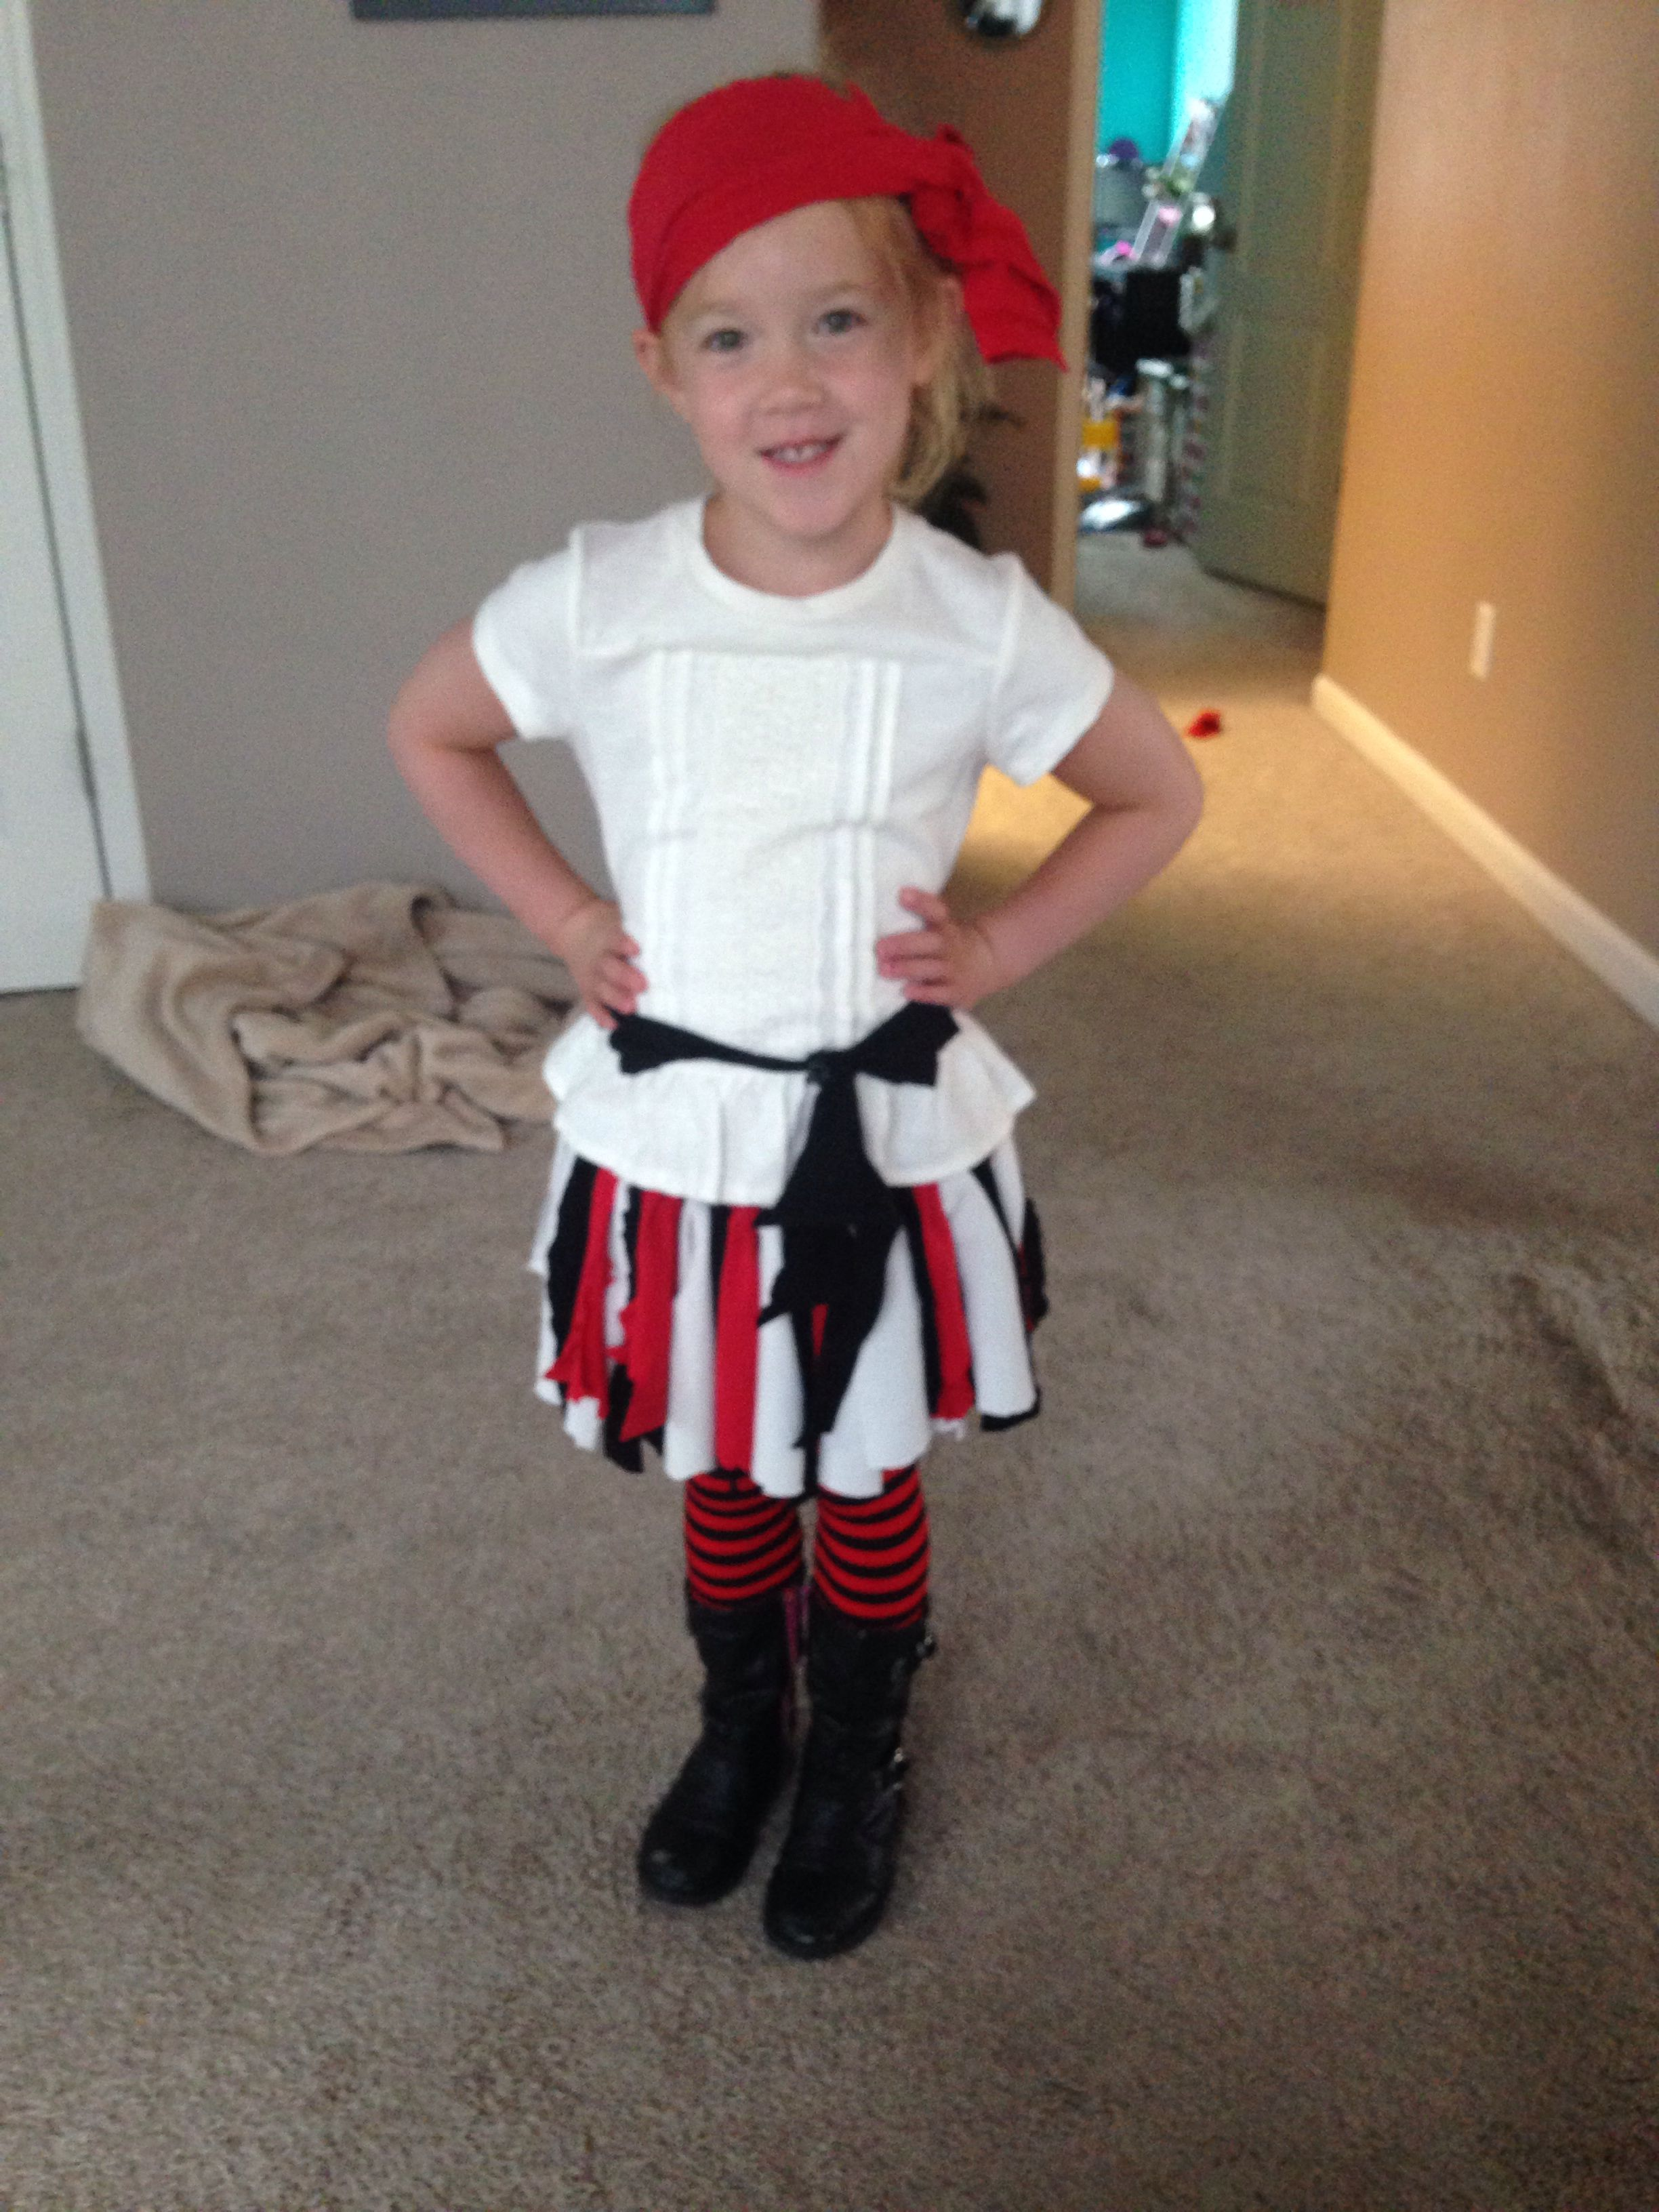 DIY girl pirate costume. Old tshirtswere used to make the skirt belt and bandana.  sc 1 st  Pinterest & DIY girl pirate costume. Old tshirtswere used to make the skirt ...